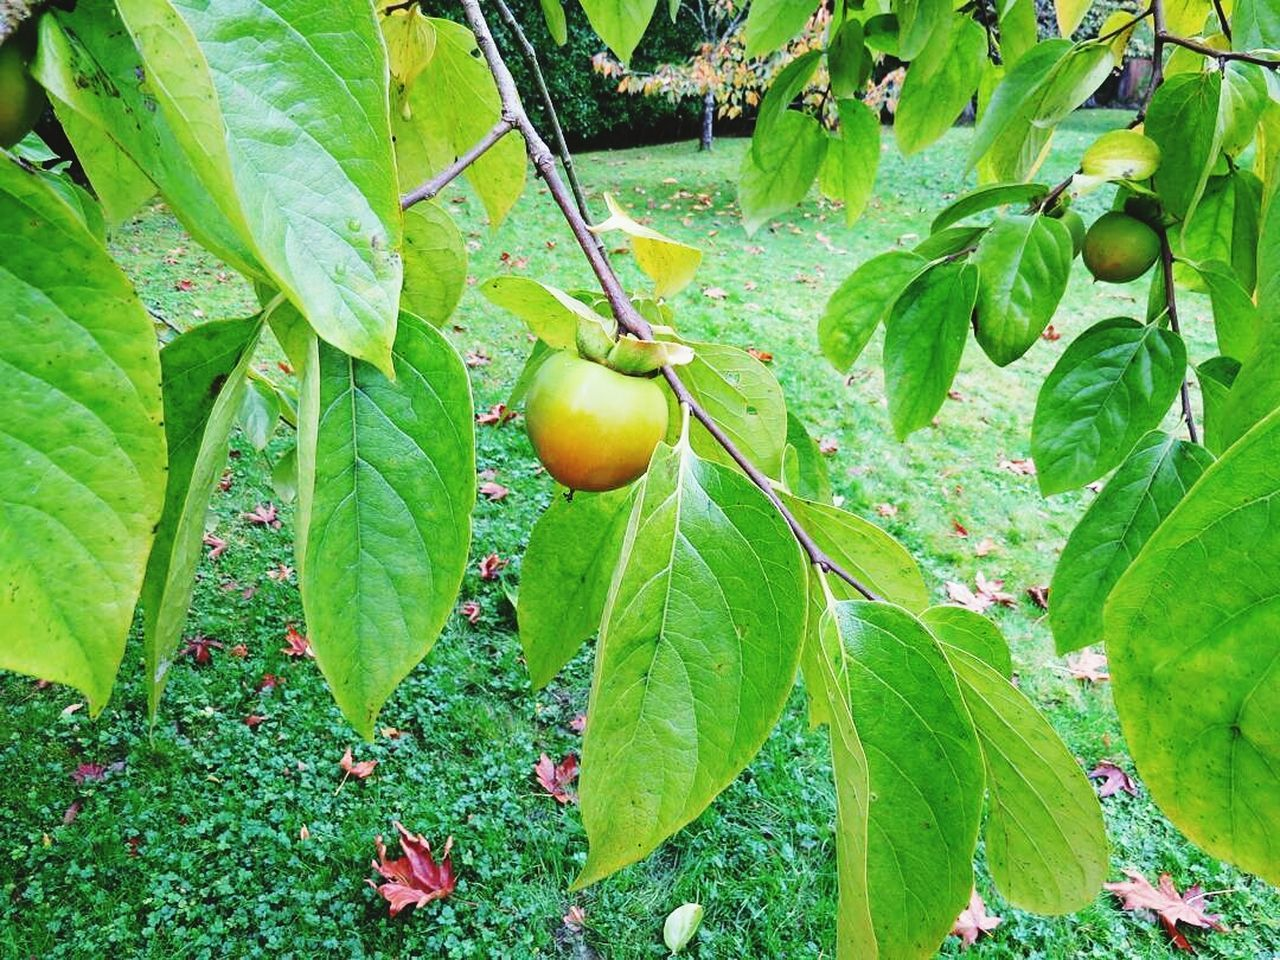 fruit, leaf, growth, food and drink, green color, food, freshness, healthy eating, unripe, day, agriculture, nature, no people, outdoors, tree, close-up, beauty in nature